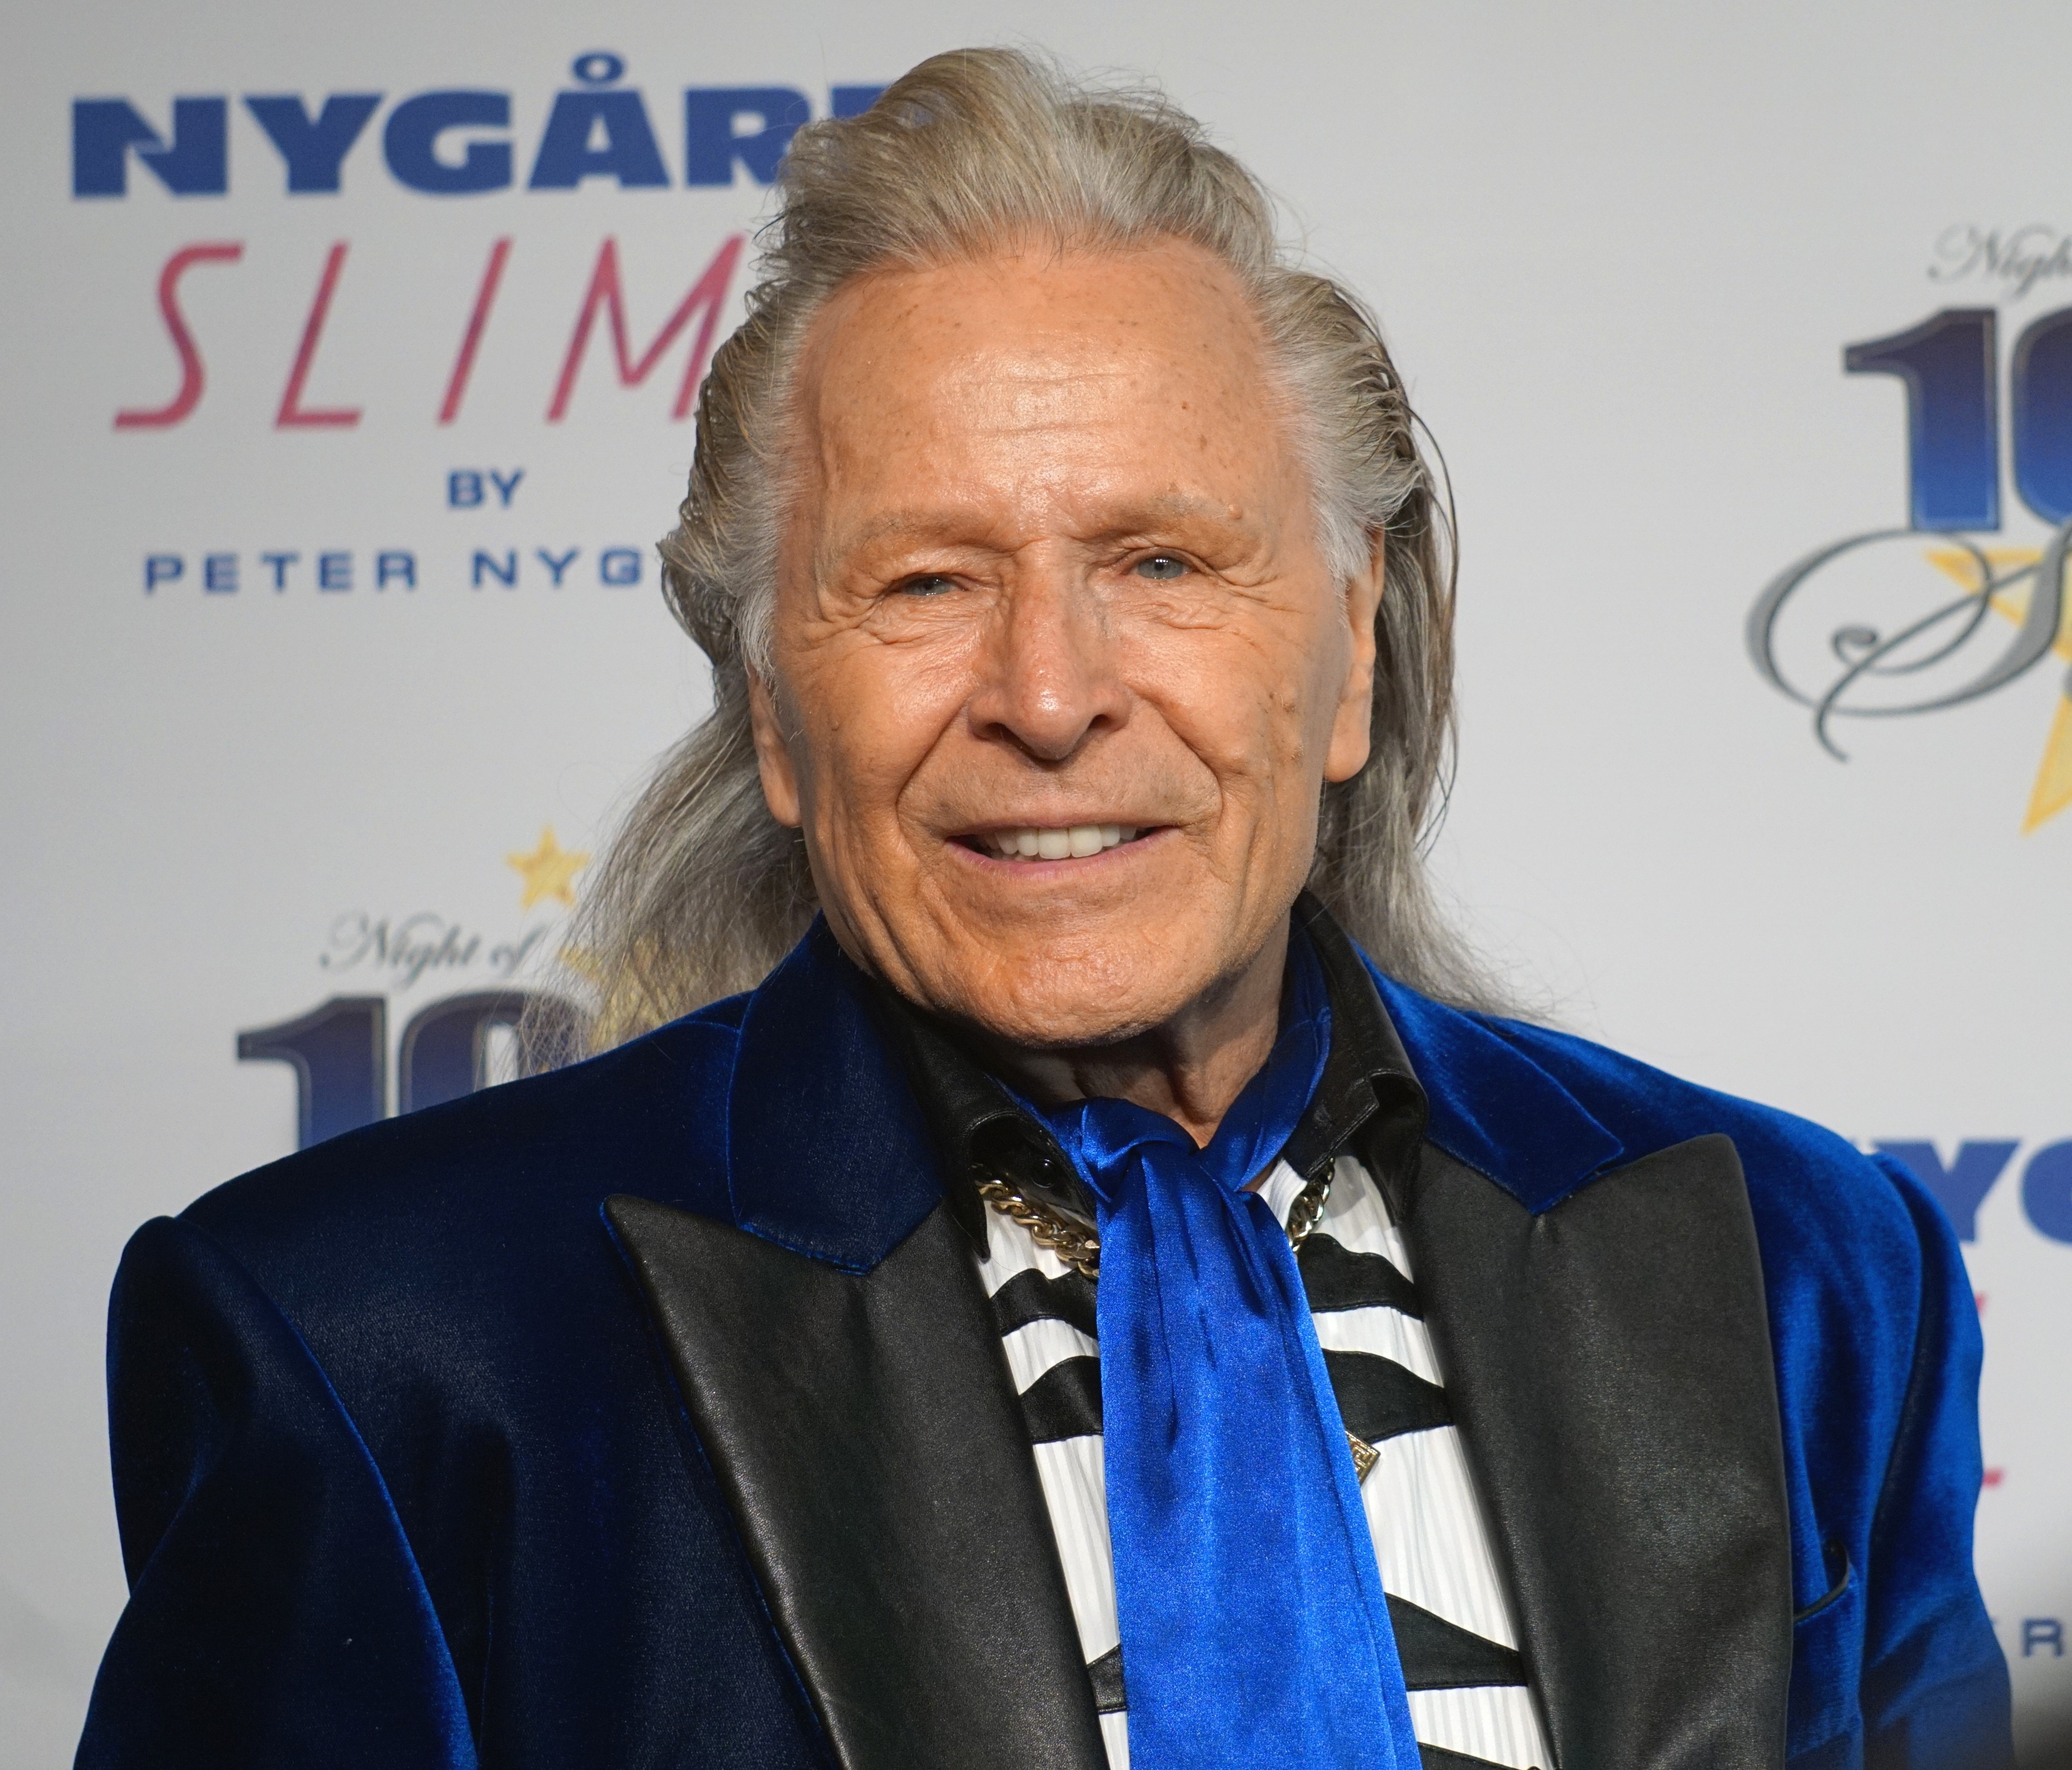 NYPD Raids Manhattan HQ of Canadian Fashion Mogul Peter Nygard Amid Sex Abuse Claims